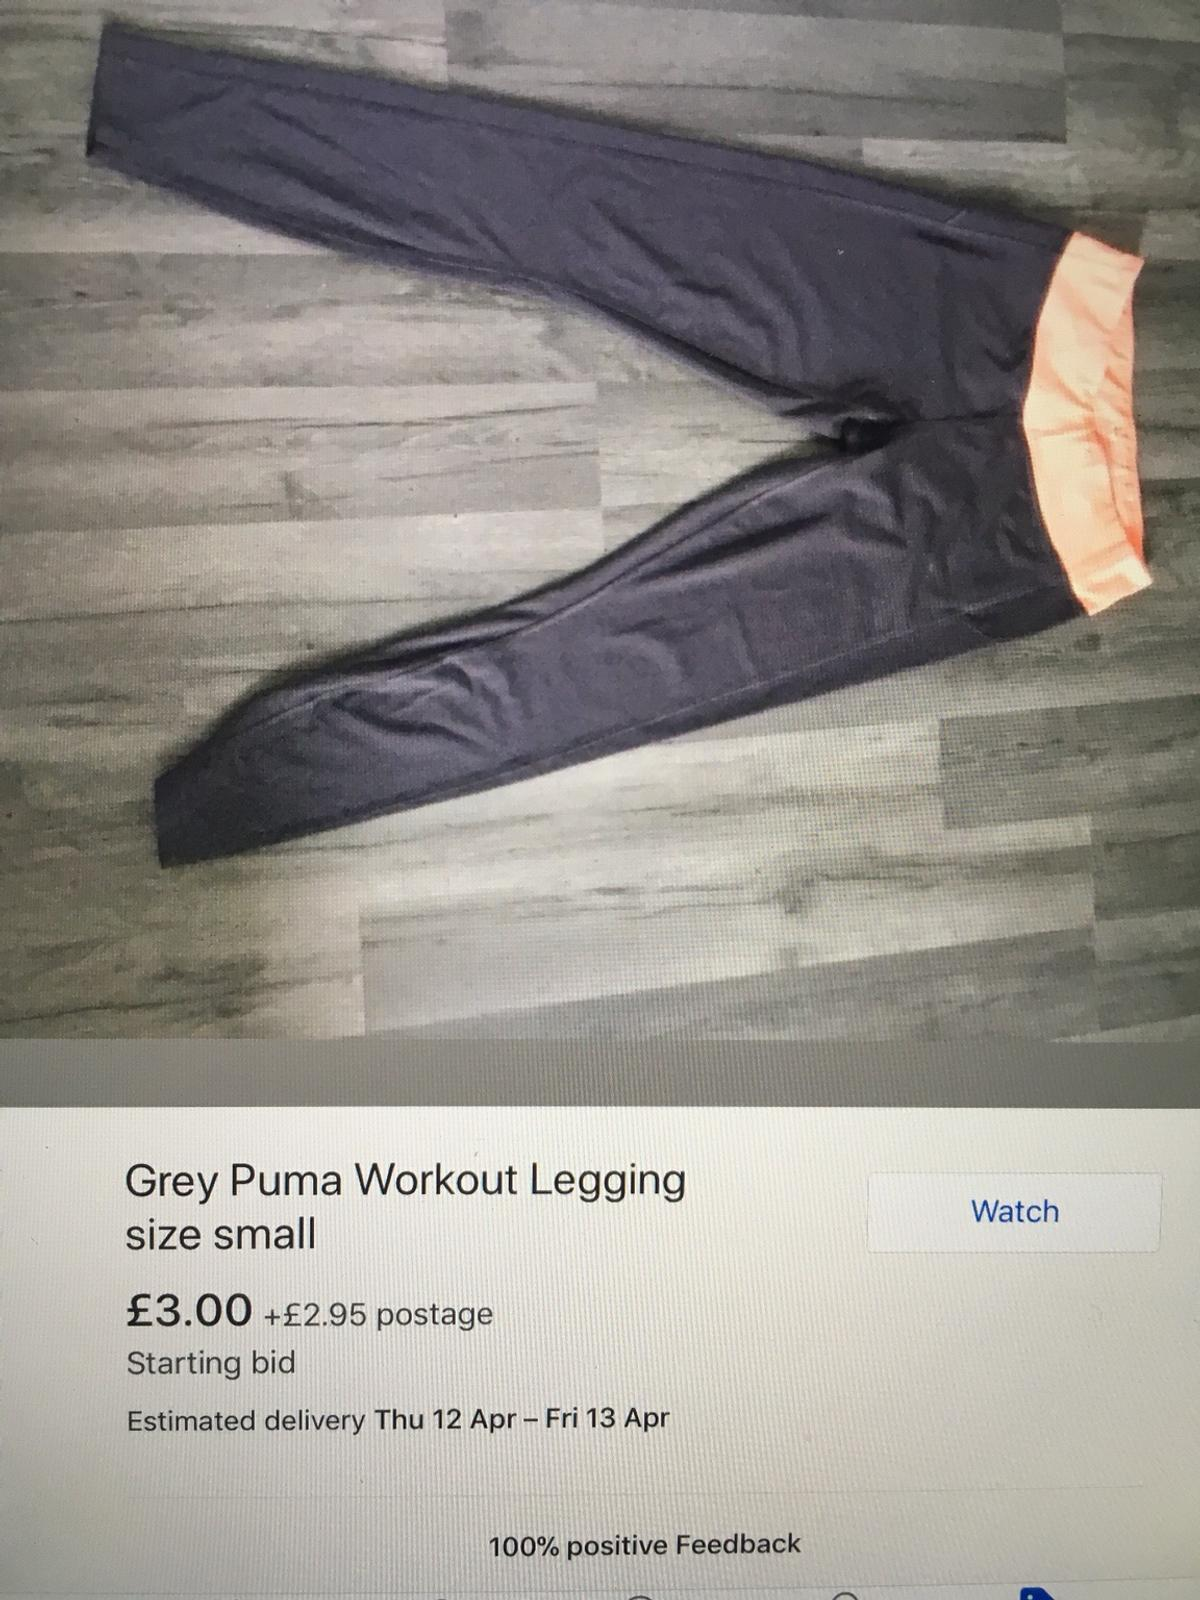 773fccfd53 Puma grey size small work out leggings in SW19 Wandsworth for £3.00 ...